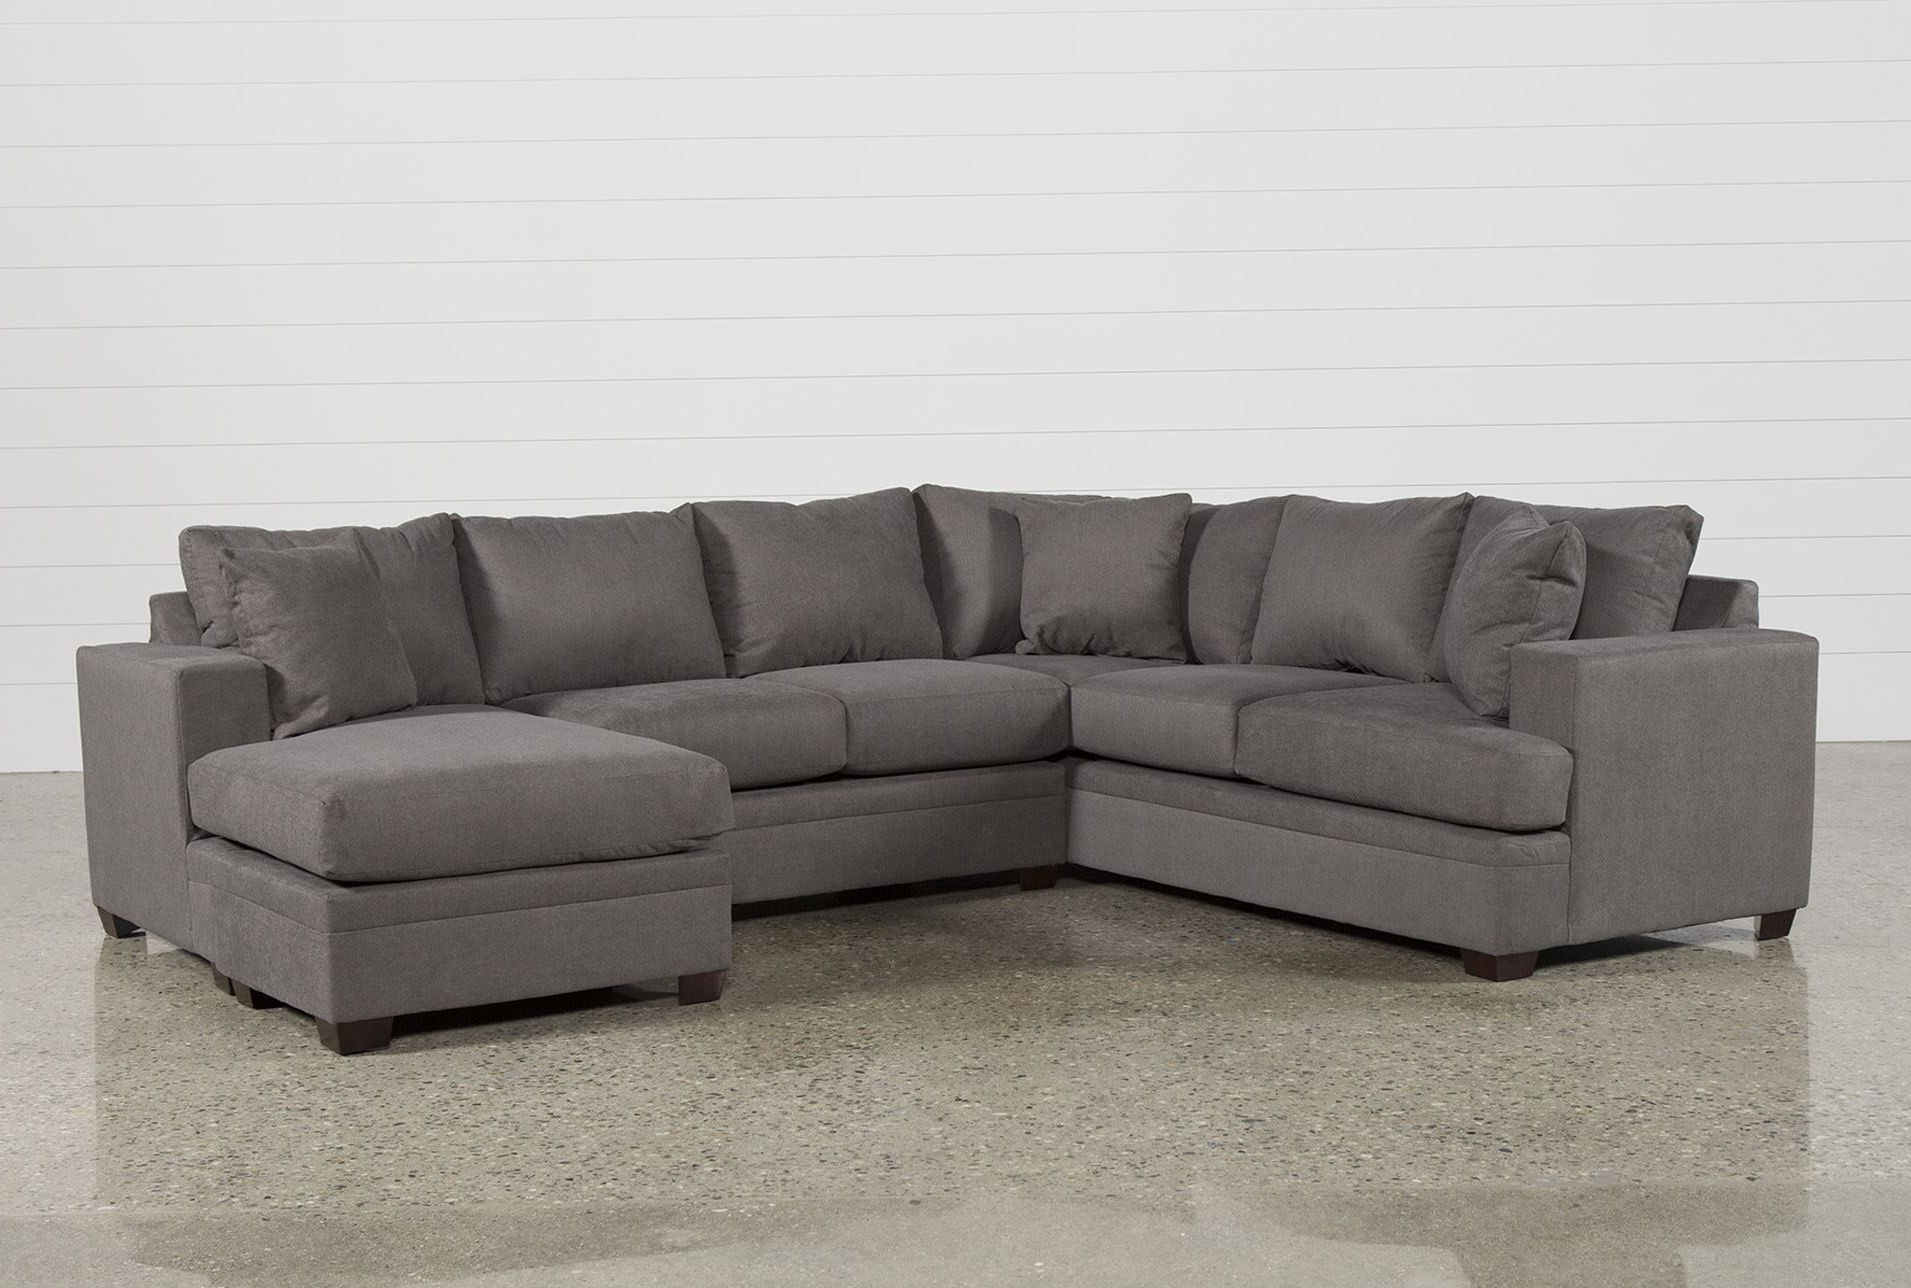 Fashionable Arrowmask 2 Piece Sectionals With Laf Chaise Intended For Kerri 2 Piece Sectional W/raf Chaise In  (View 13 of 20)